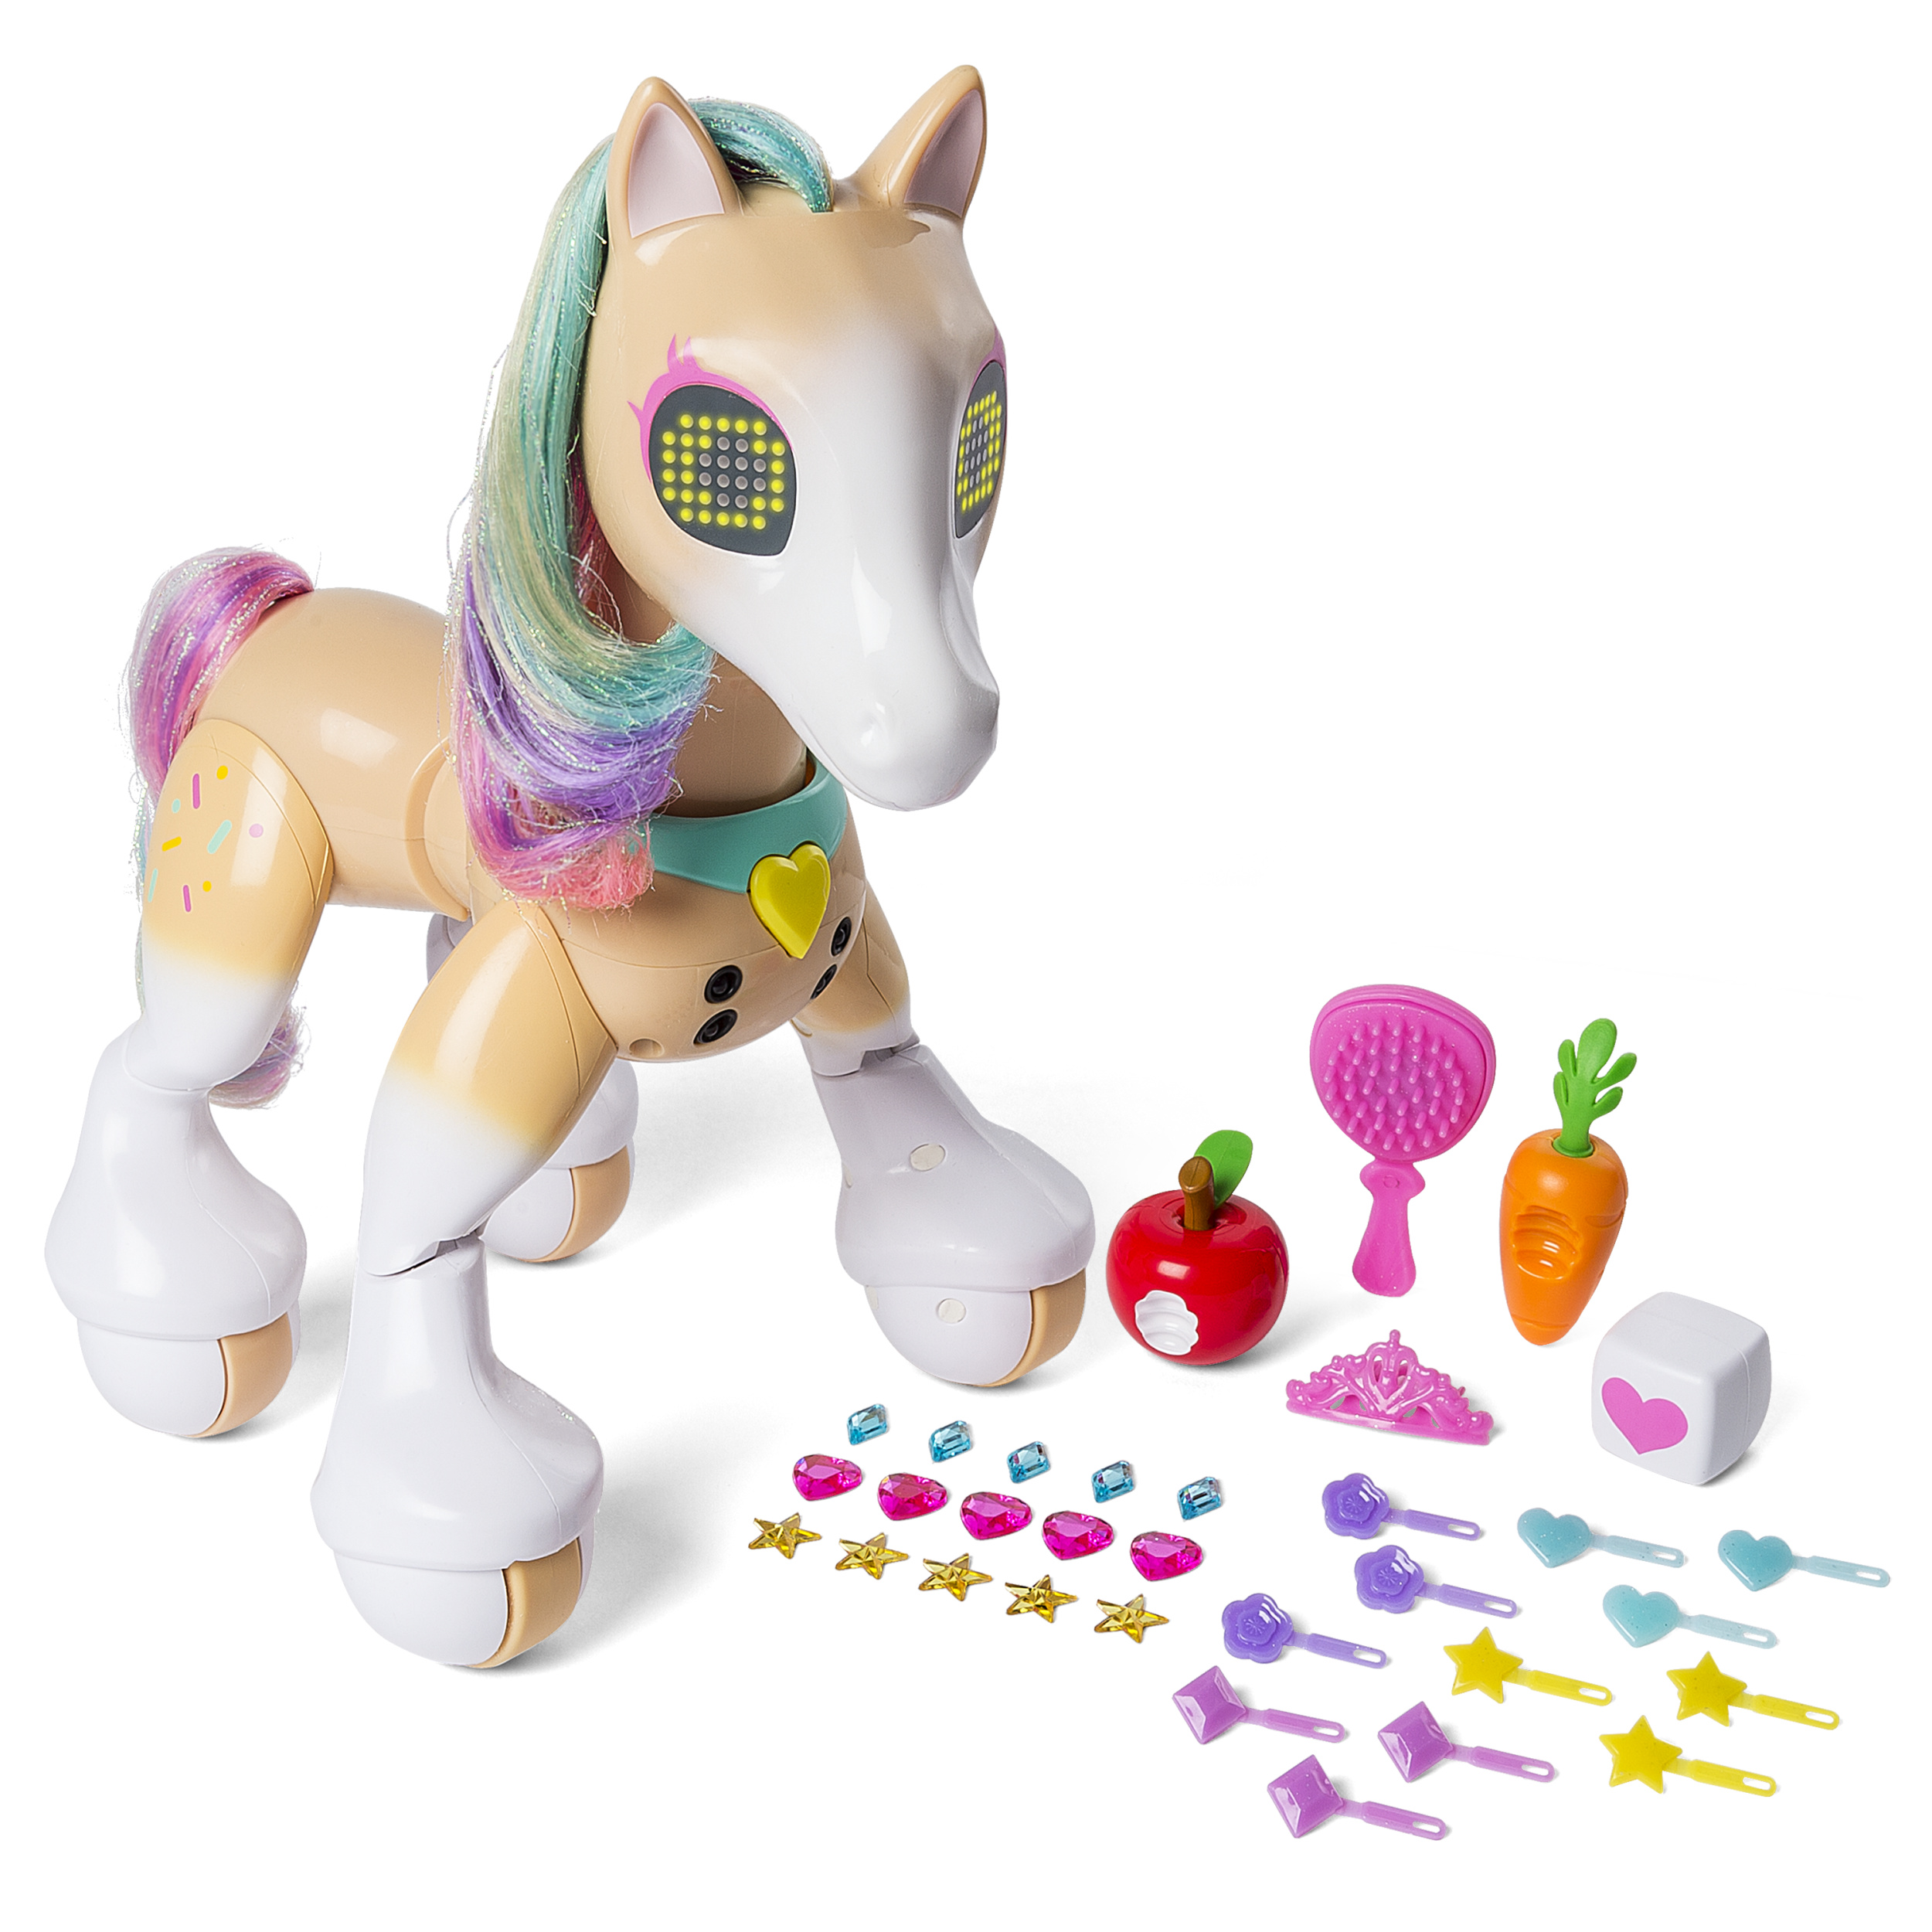 Zoomer – Zoomer Fashion Pony with Sounds and Movement - Walmart Exclusive